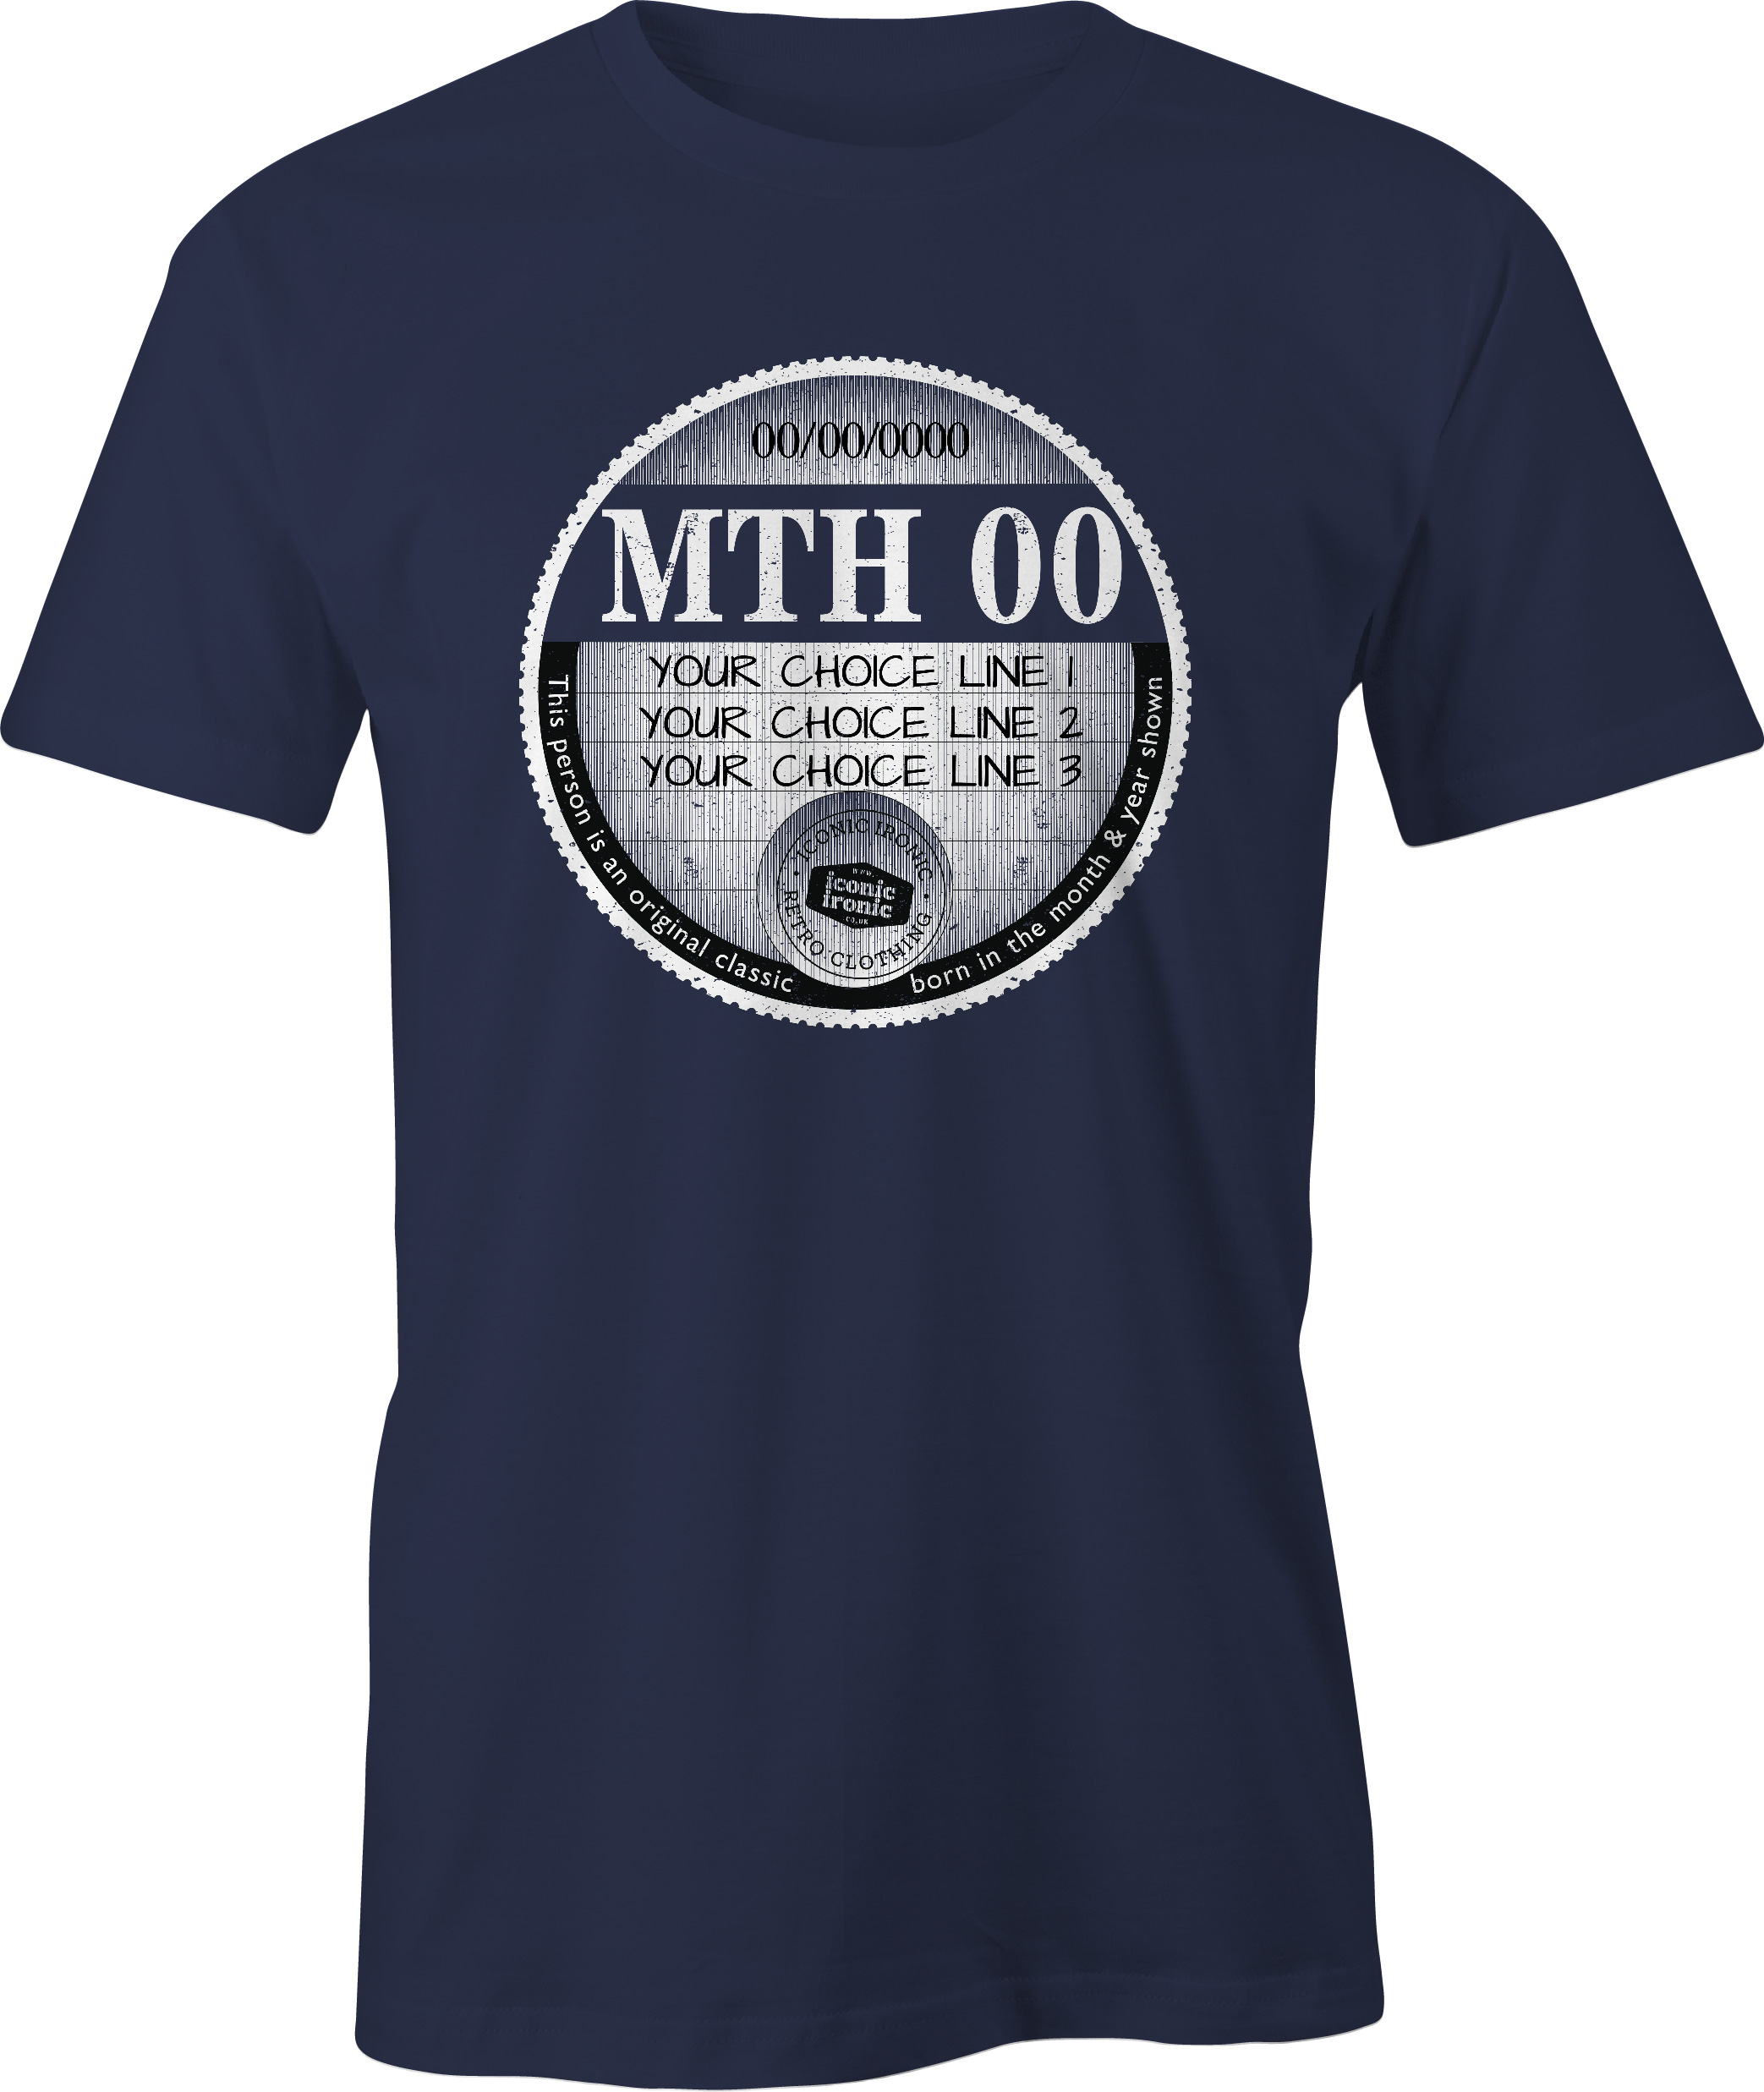 Navy car tax t-shirt with large graphic